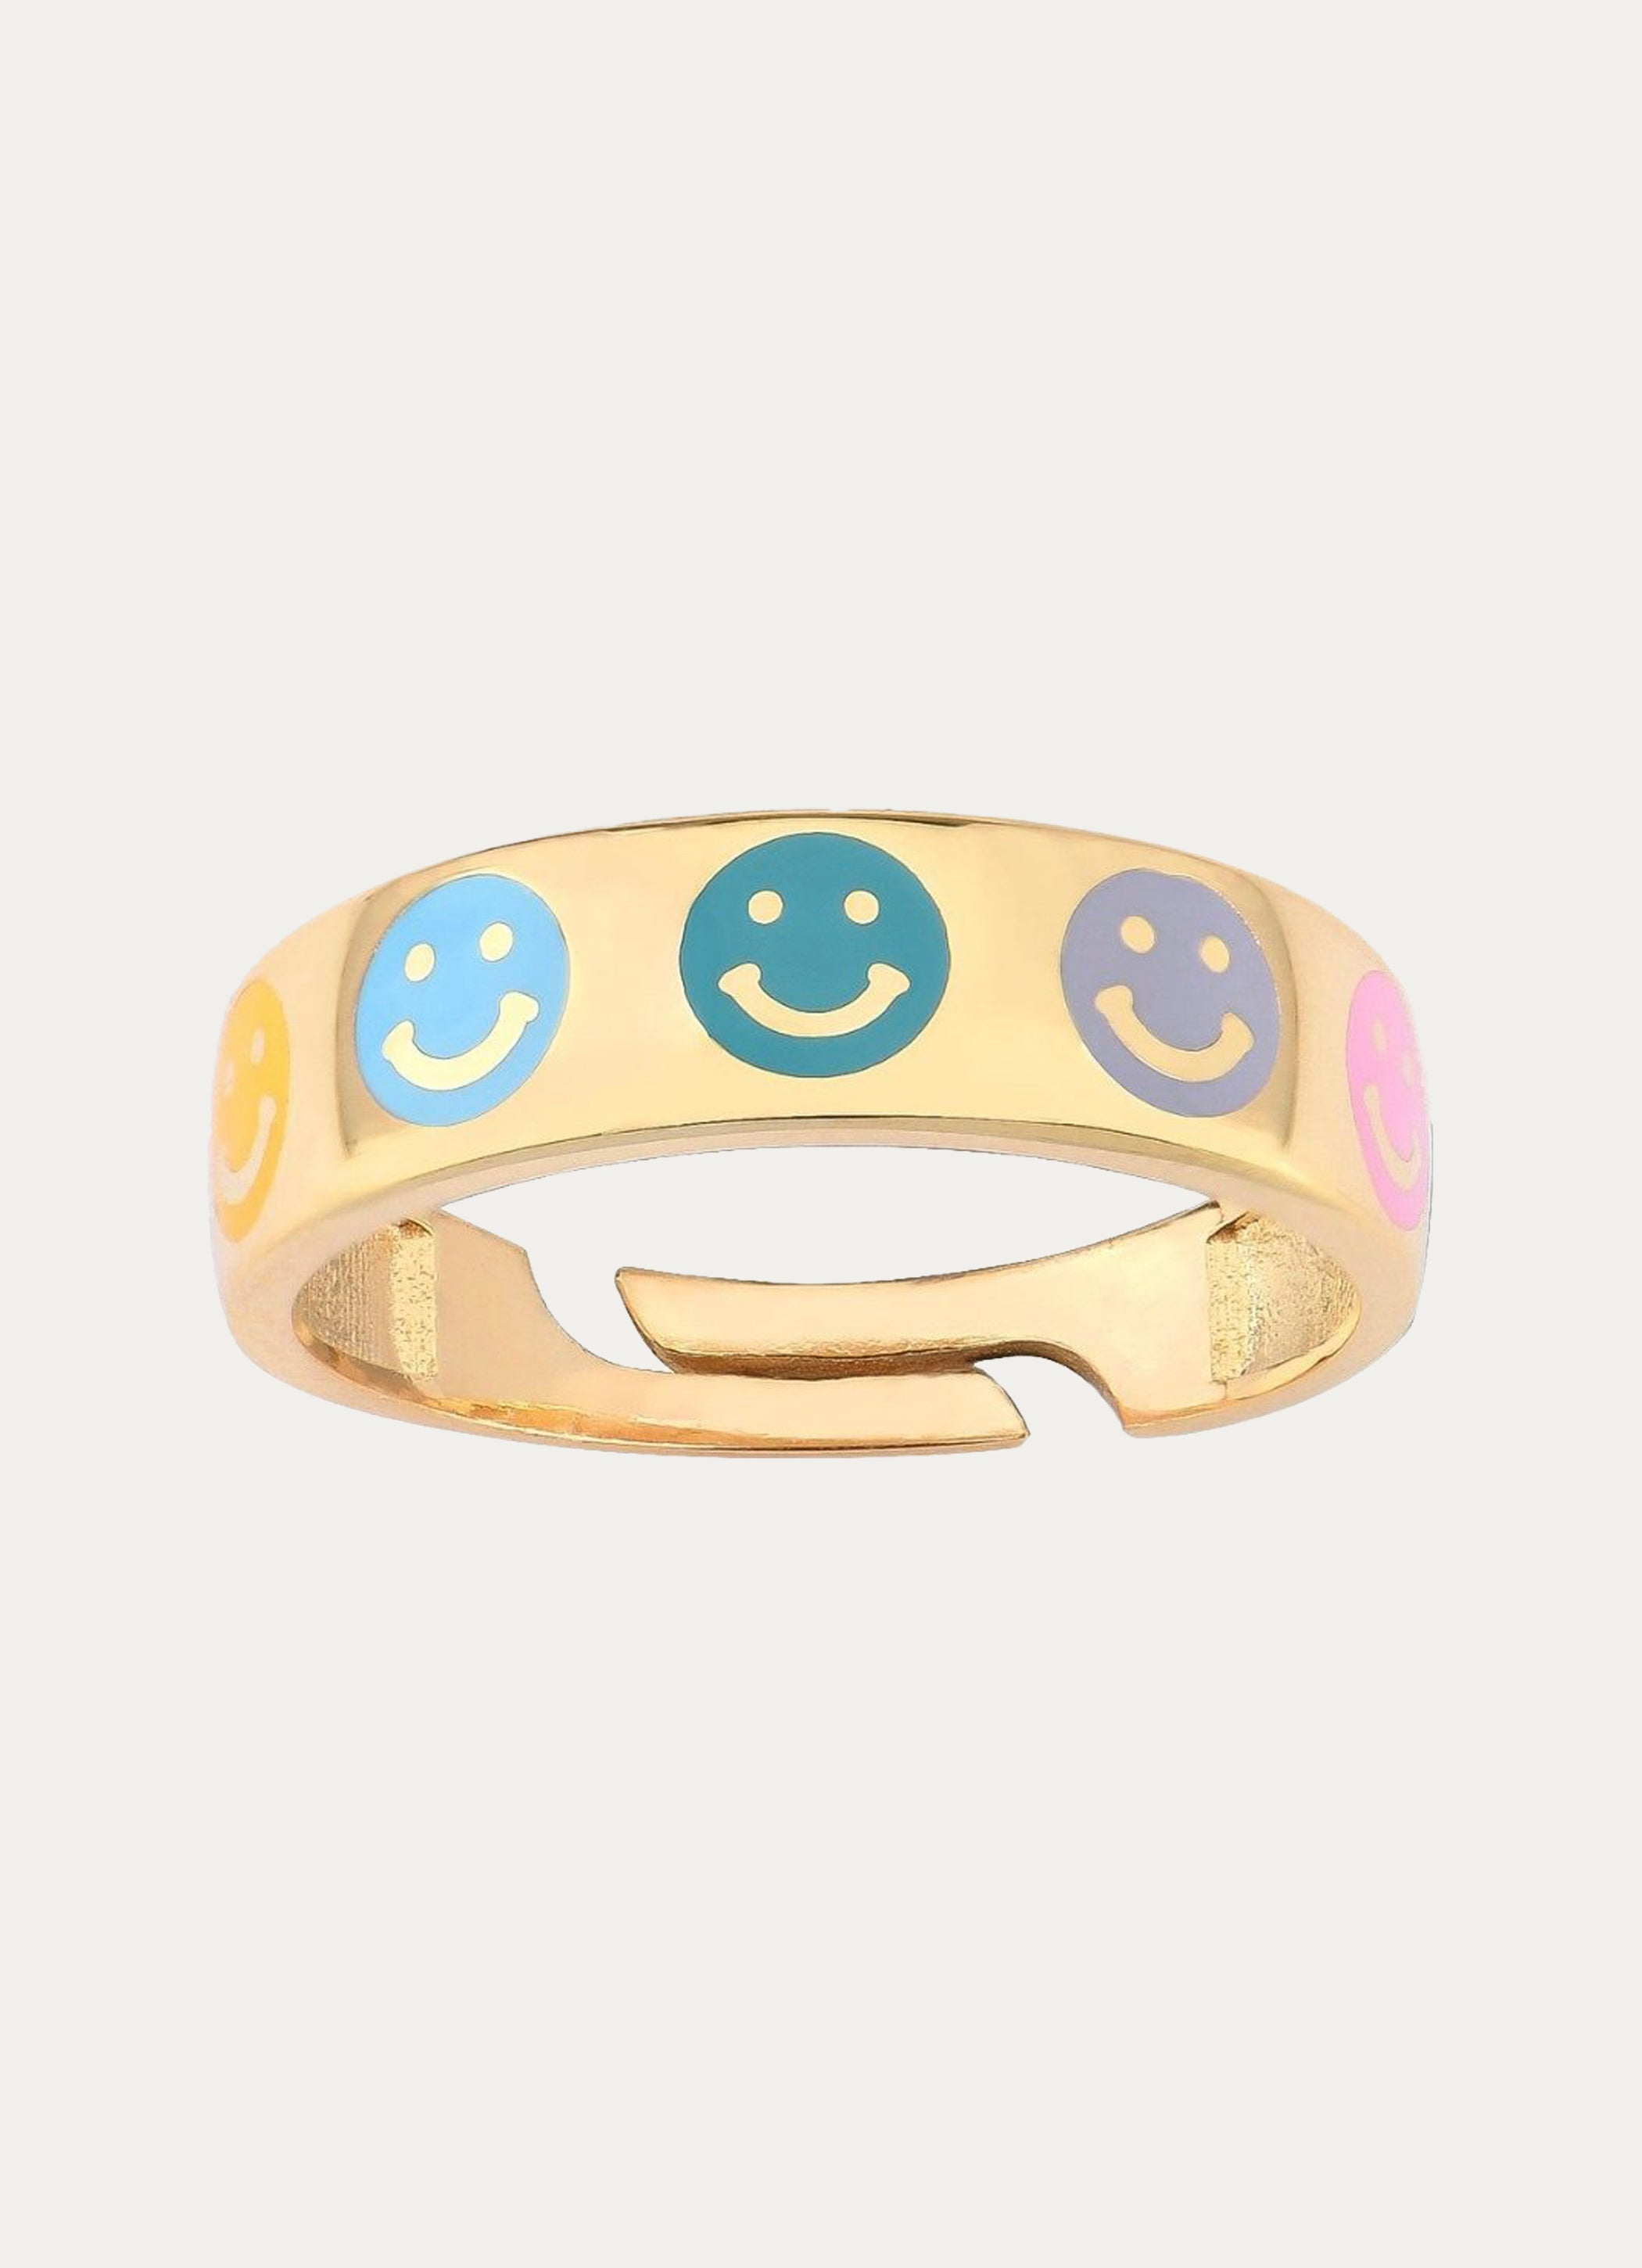 Colorful Smiley Ring